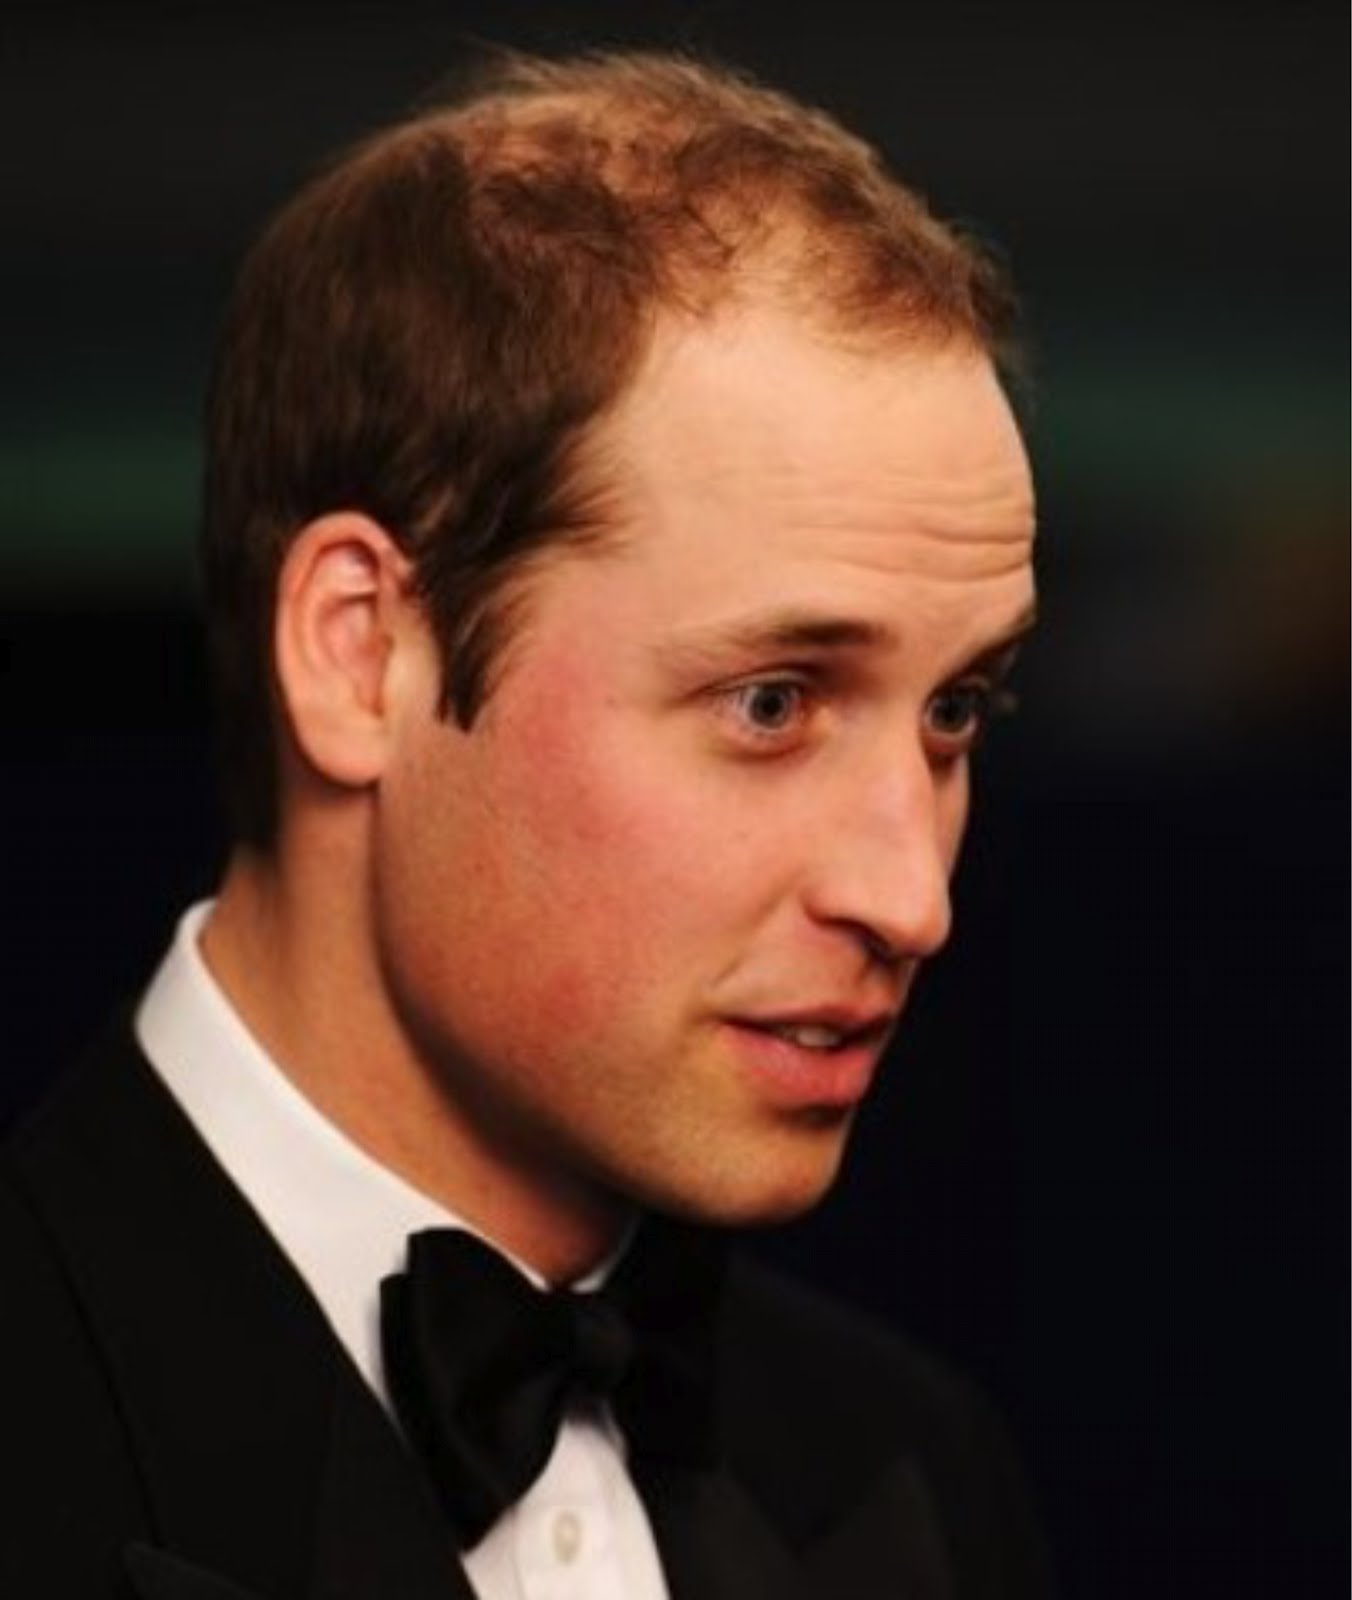 european bloodlines face end time vortex of exposure recommended charles is the heir apparent first in line of succession and william is second in line of succession to the british throne